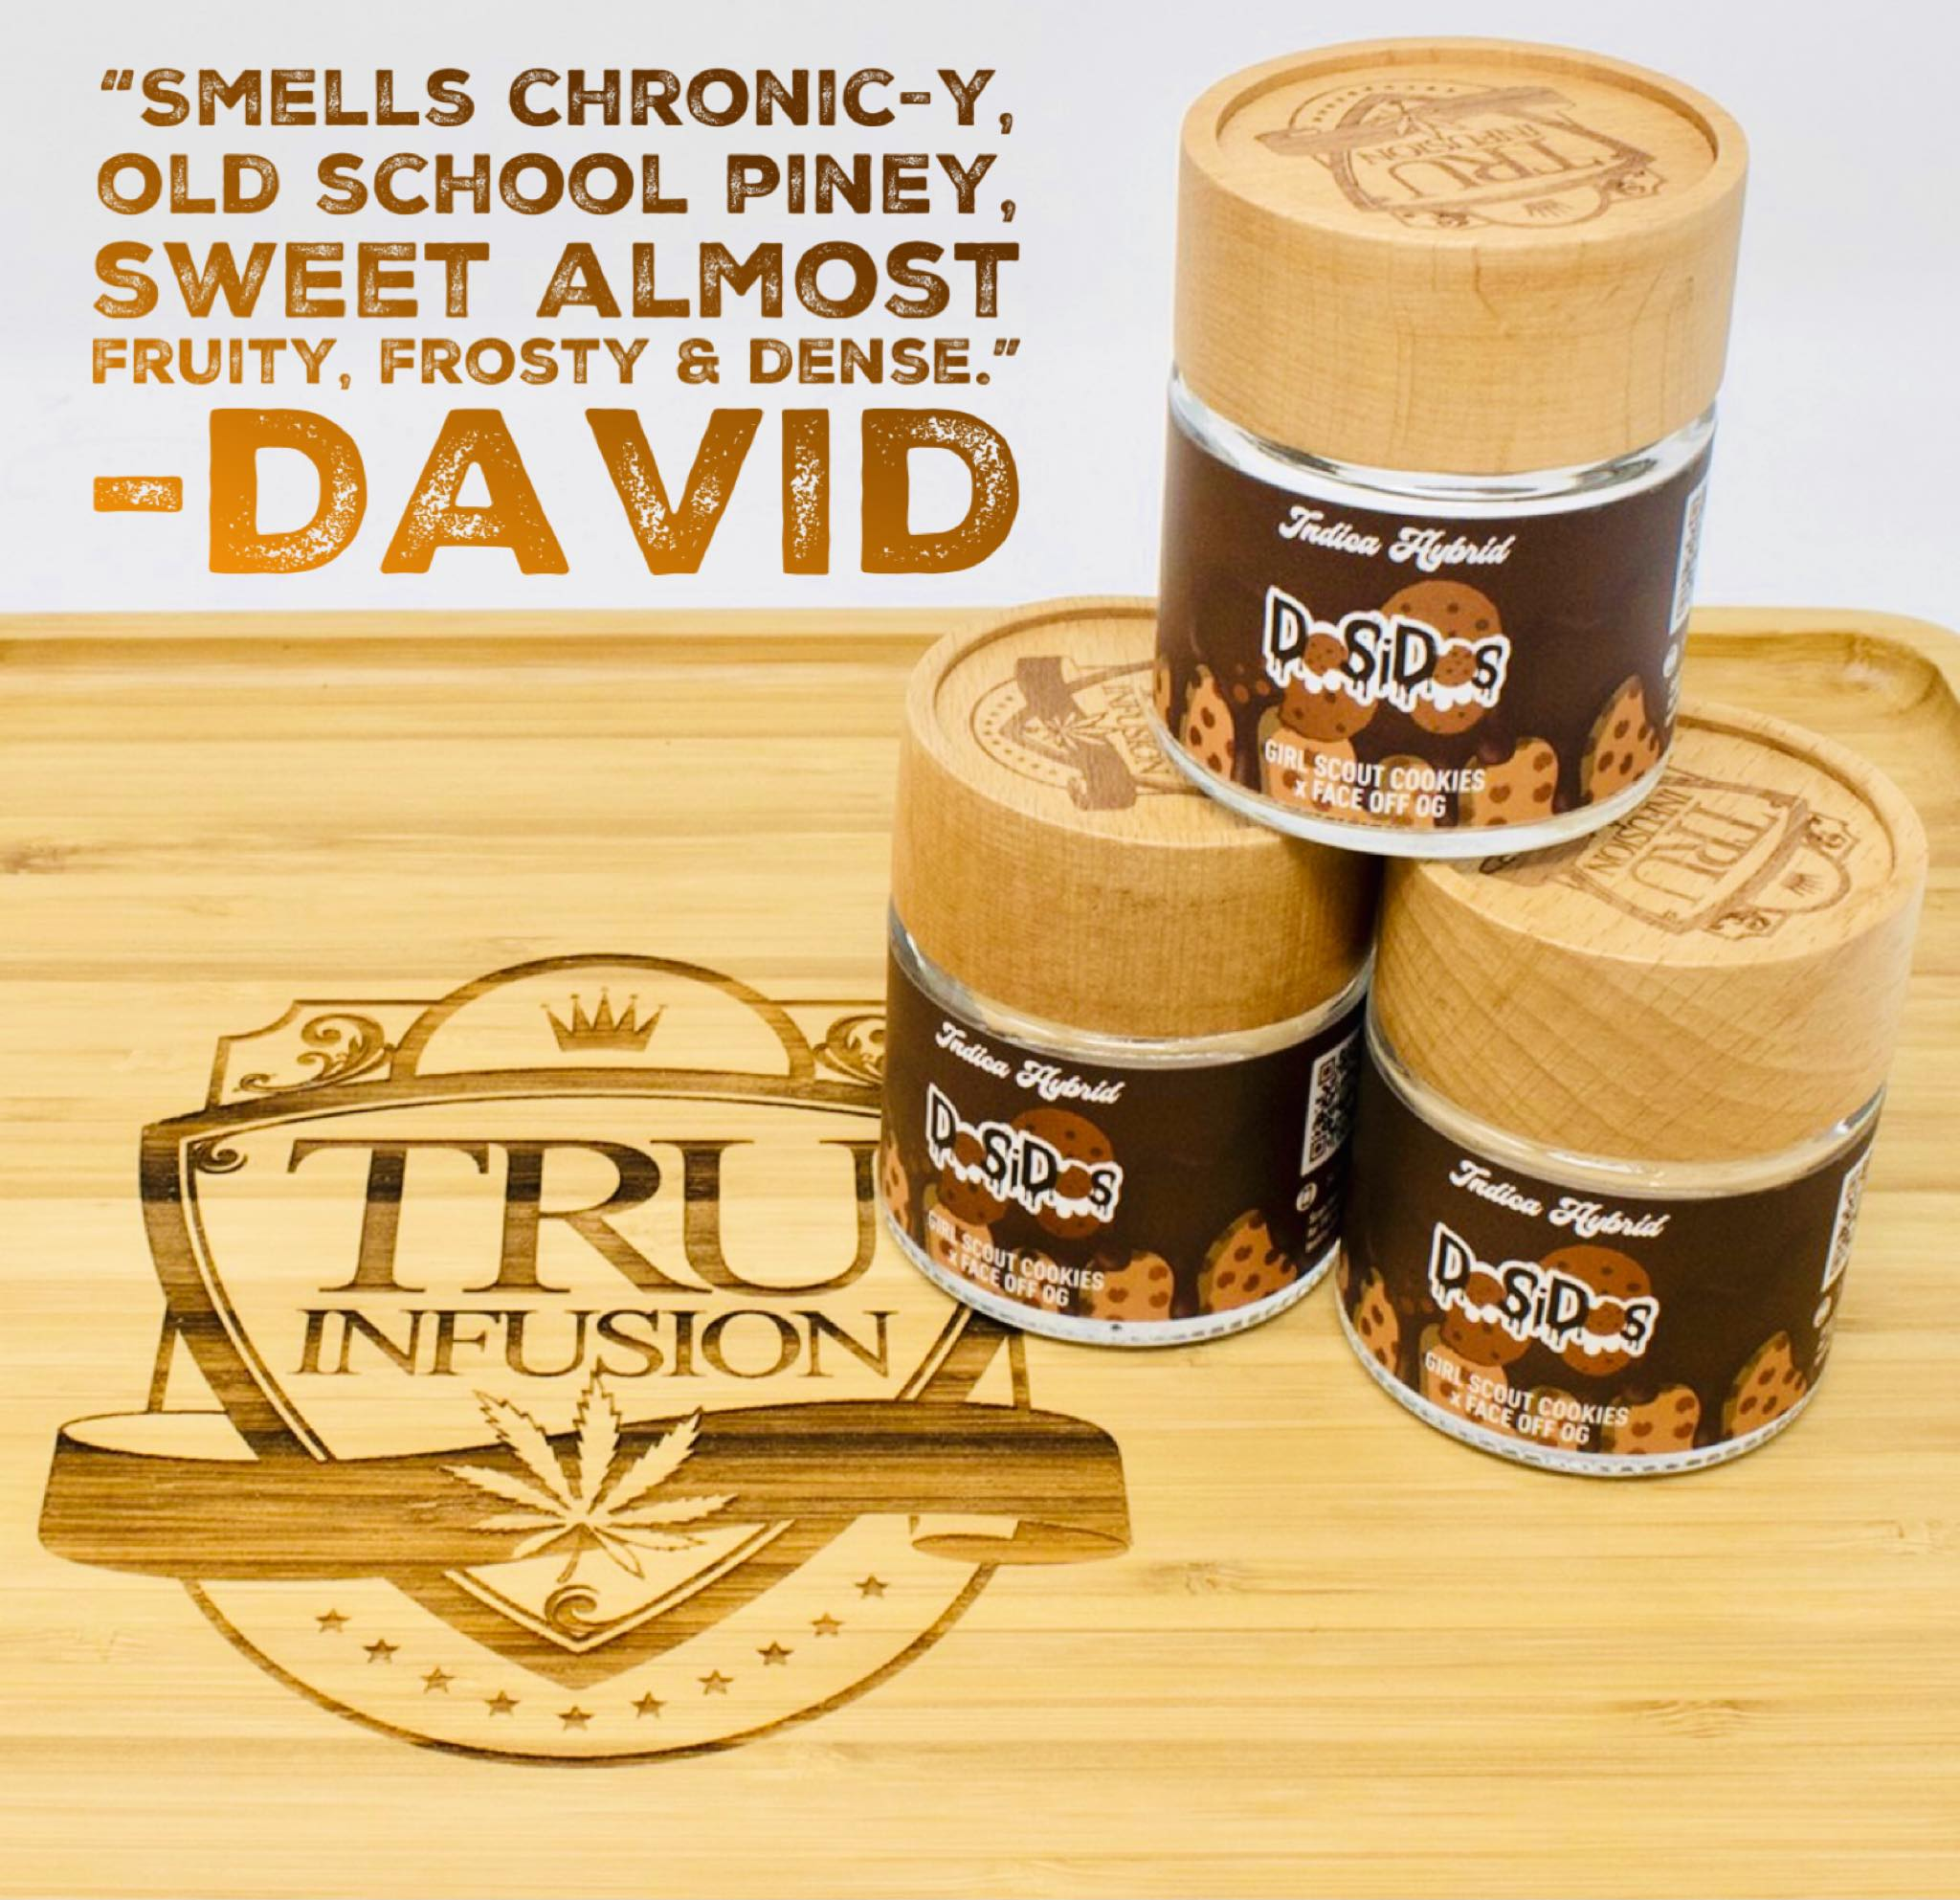 tru infusion Dosidos Smells chronic-y old school piney sweet frosty dense review david saints